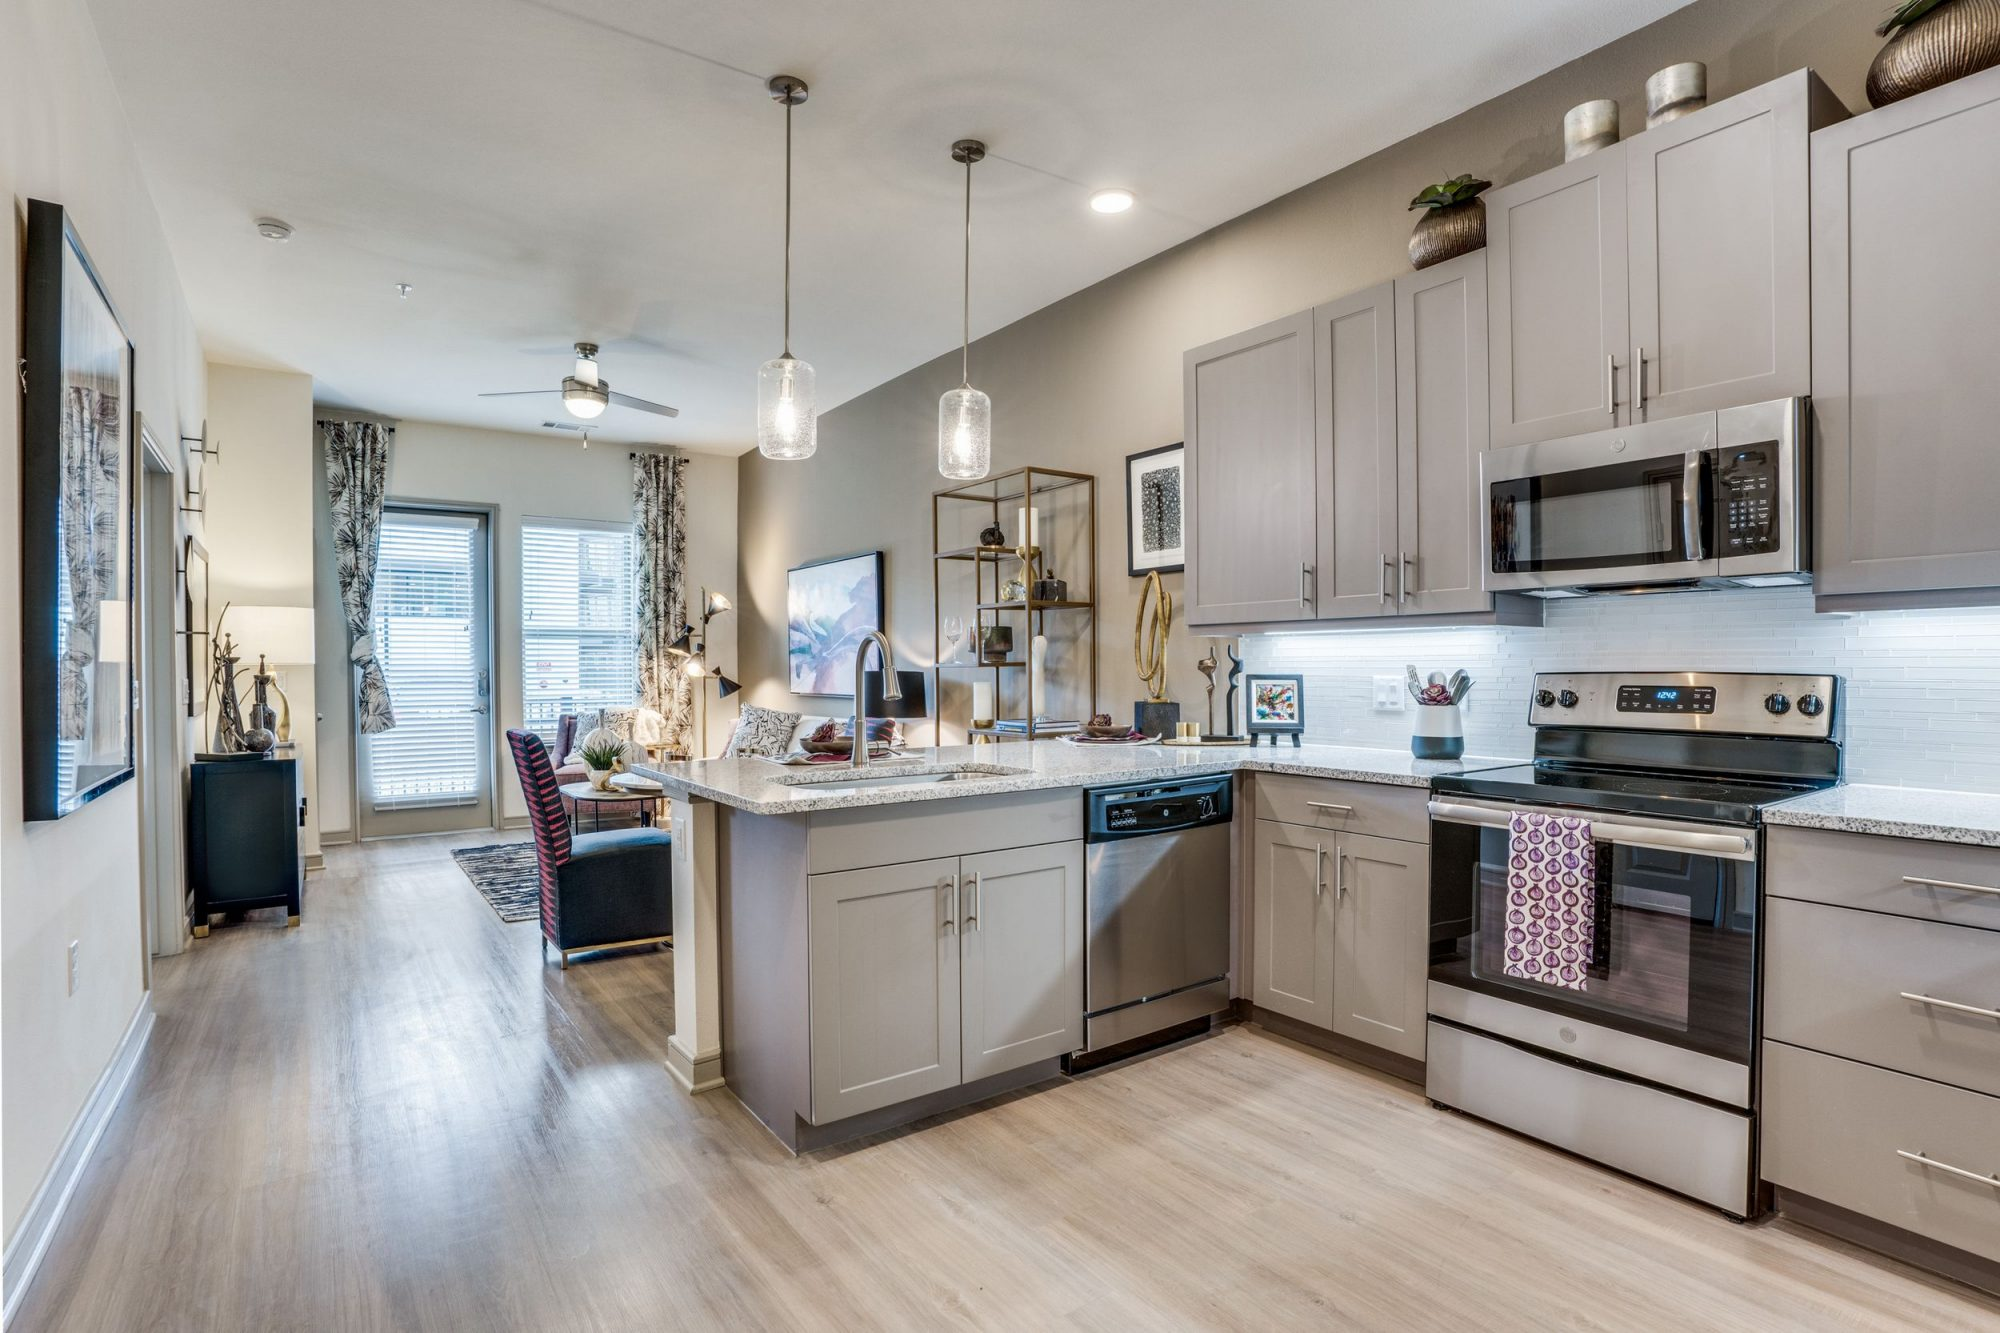 View from the L shaped kitchen with marble countertops, stainless steel appliances, wood look floors, upper and lower cabinets, pendant lighting and a view into the living/dining room